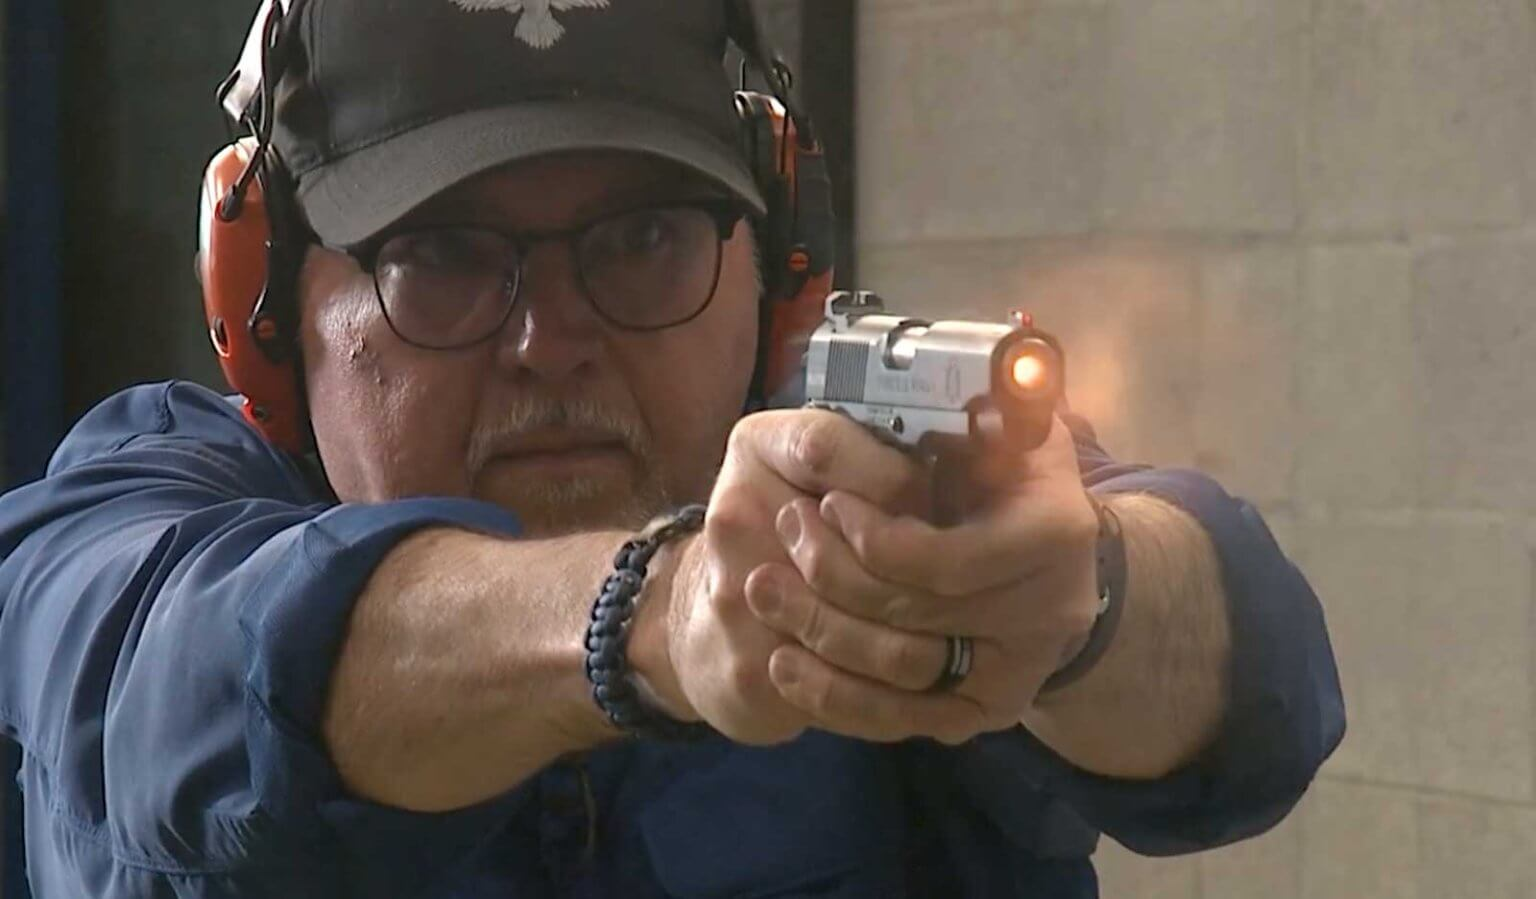 Shooting the Federal HST defensive ammo from a compact 1911 pistol